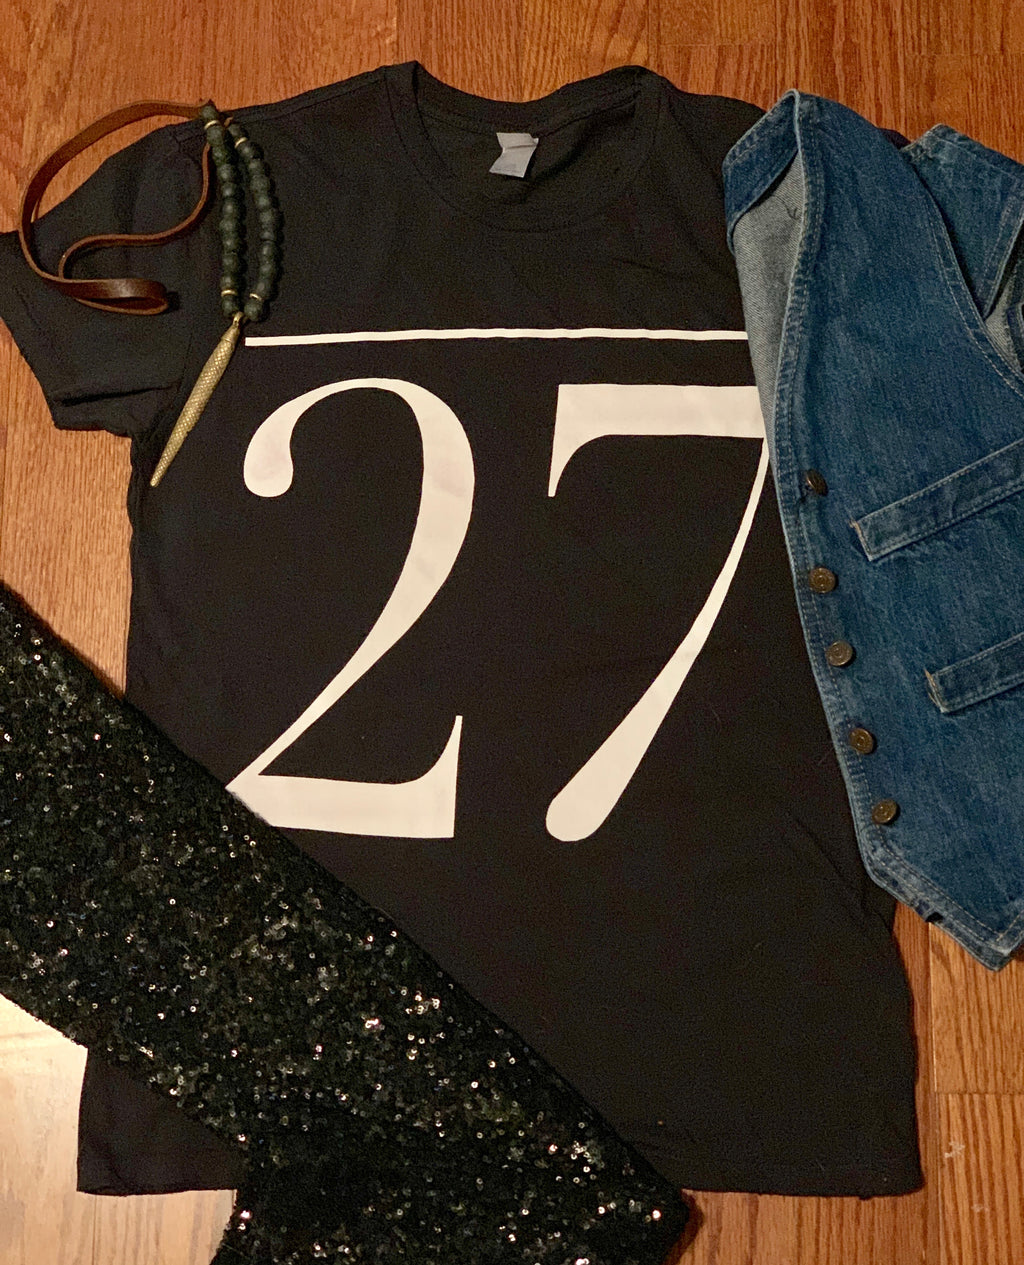 The 27 T-Shirt in Vintage Black - Wild Ones